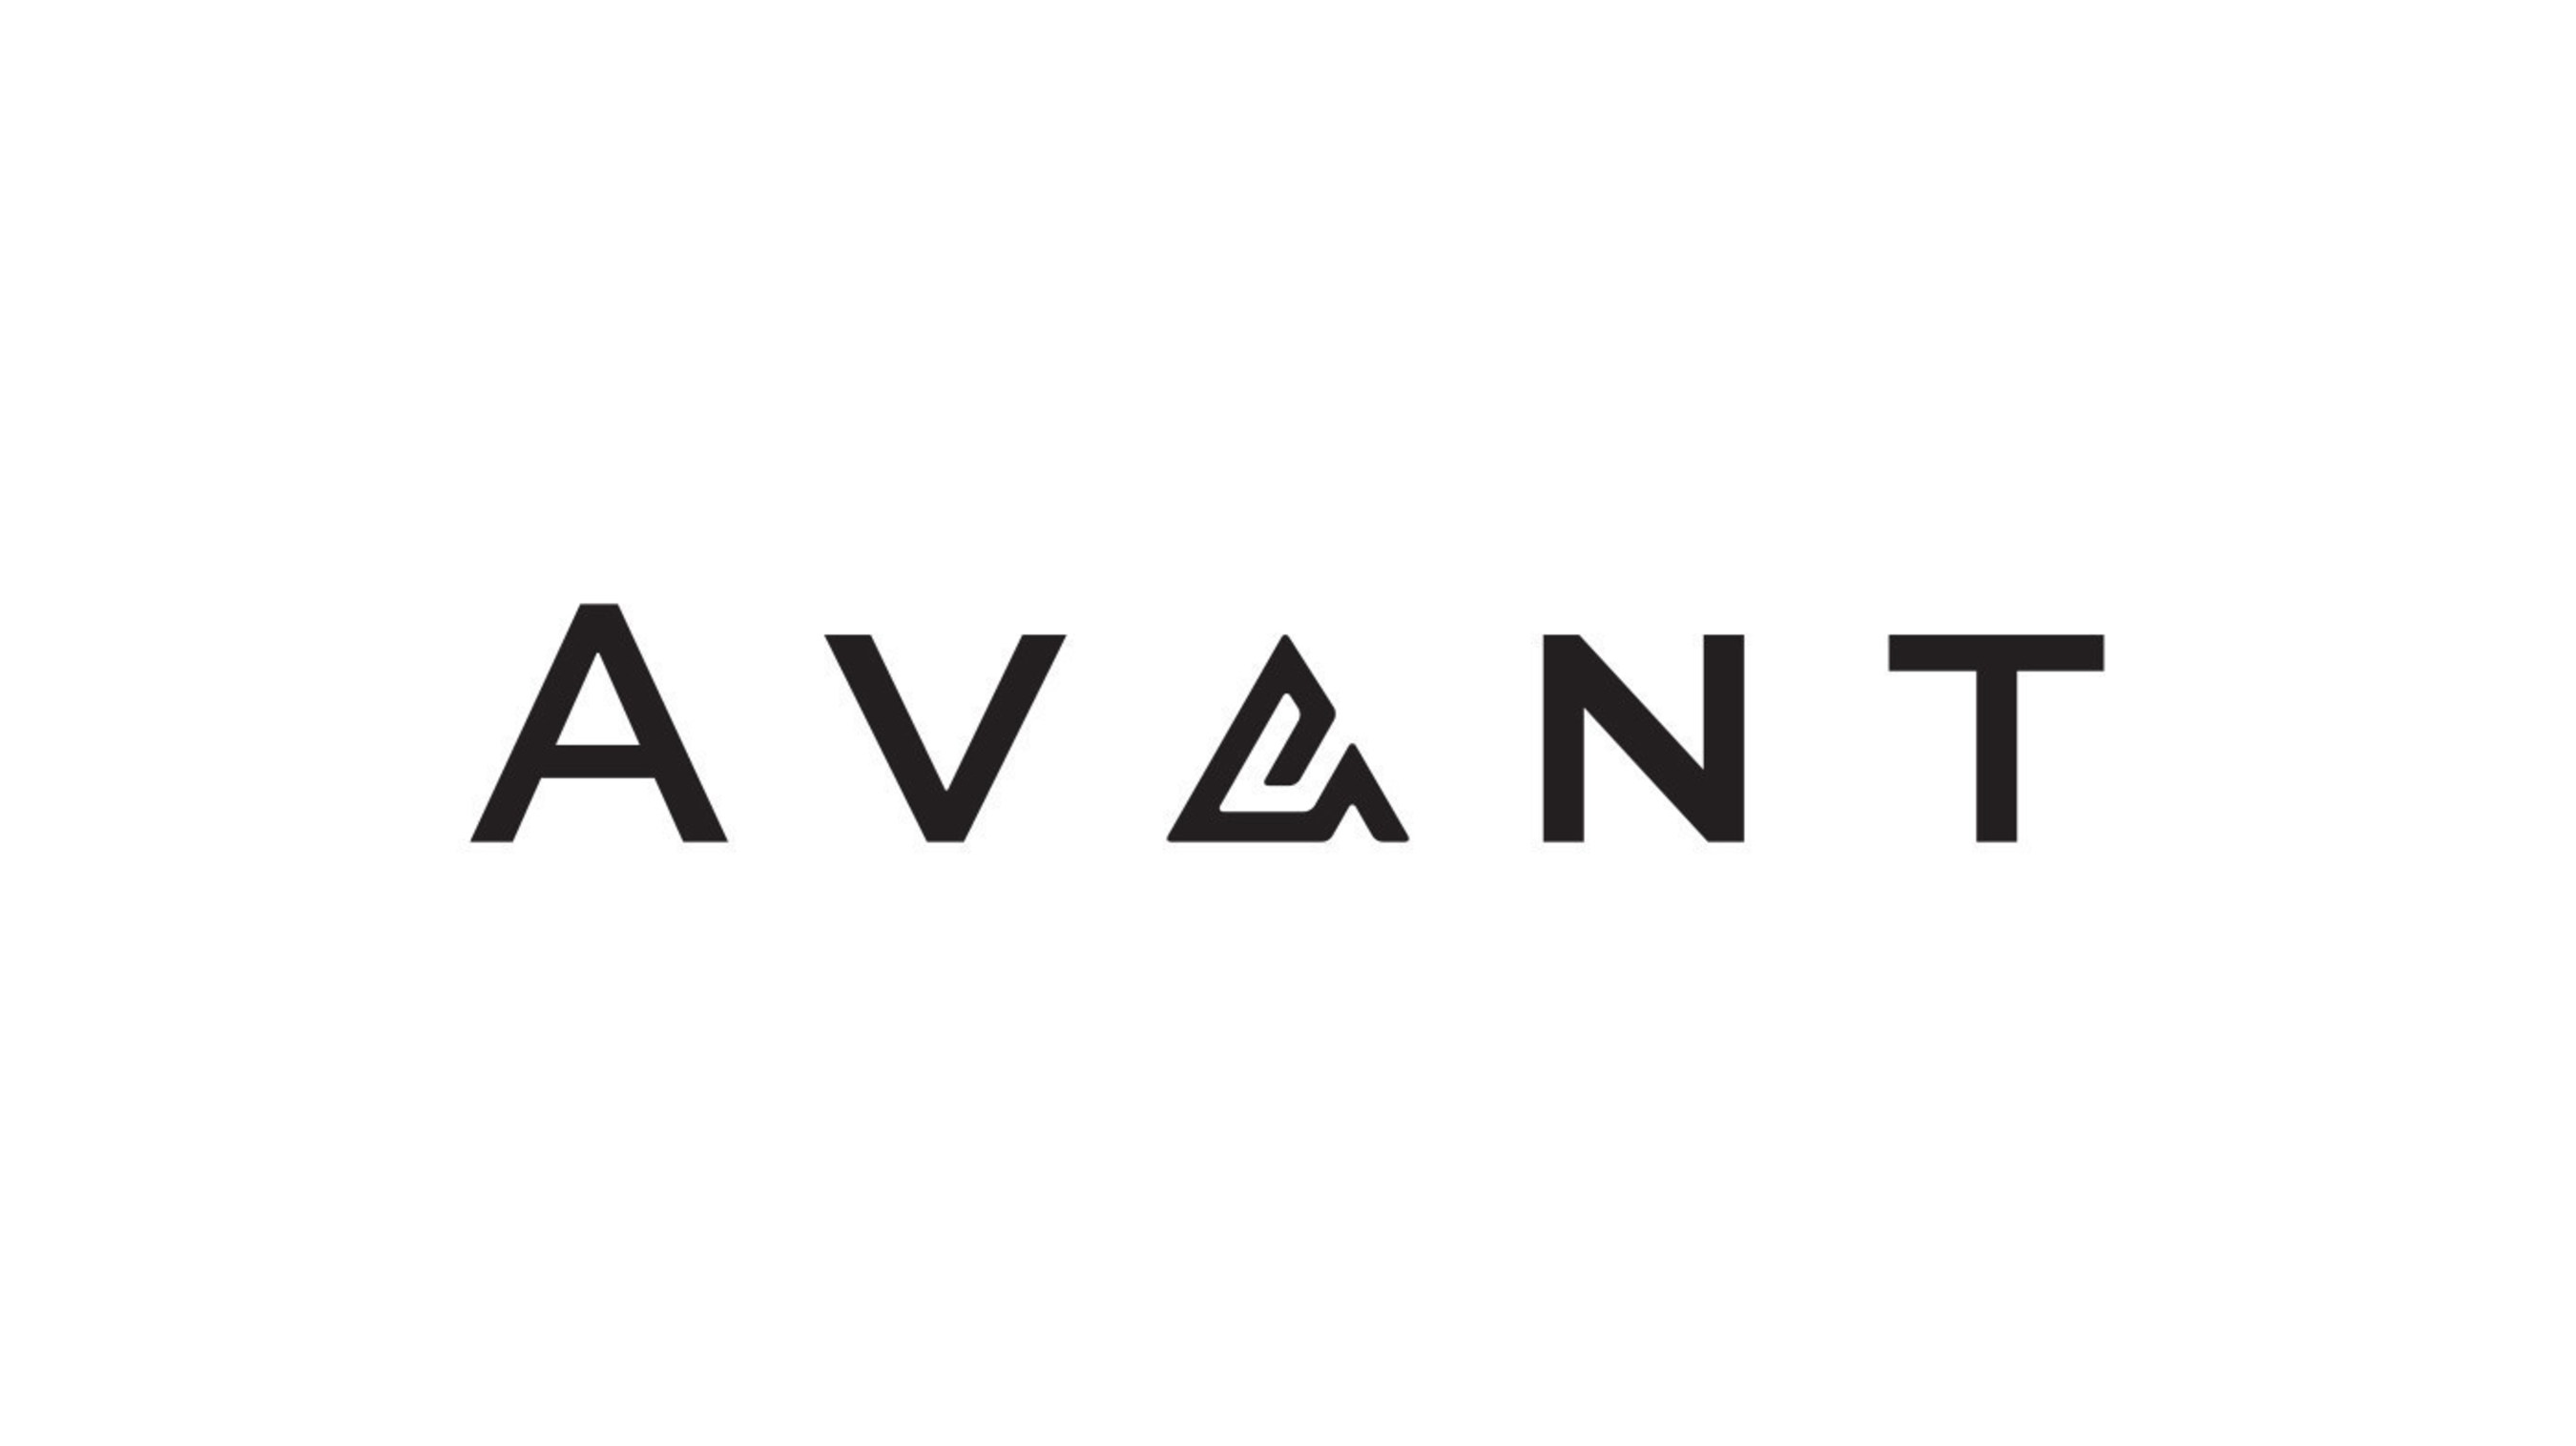 Avant is an online consumer finance platform that is changing the way consumers obtain credit. Utilizing big data and machine-learning algorithms, the company offers a unique and highly customized approach to streamlined credit options.